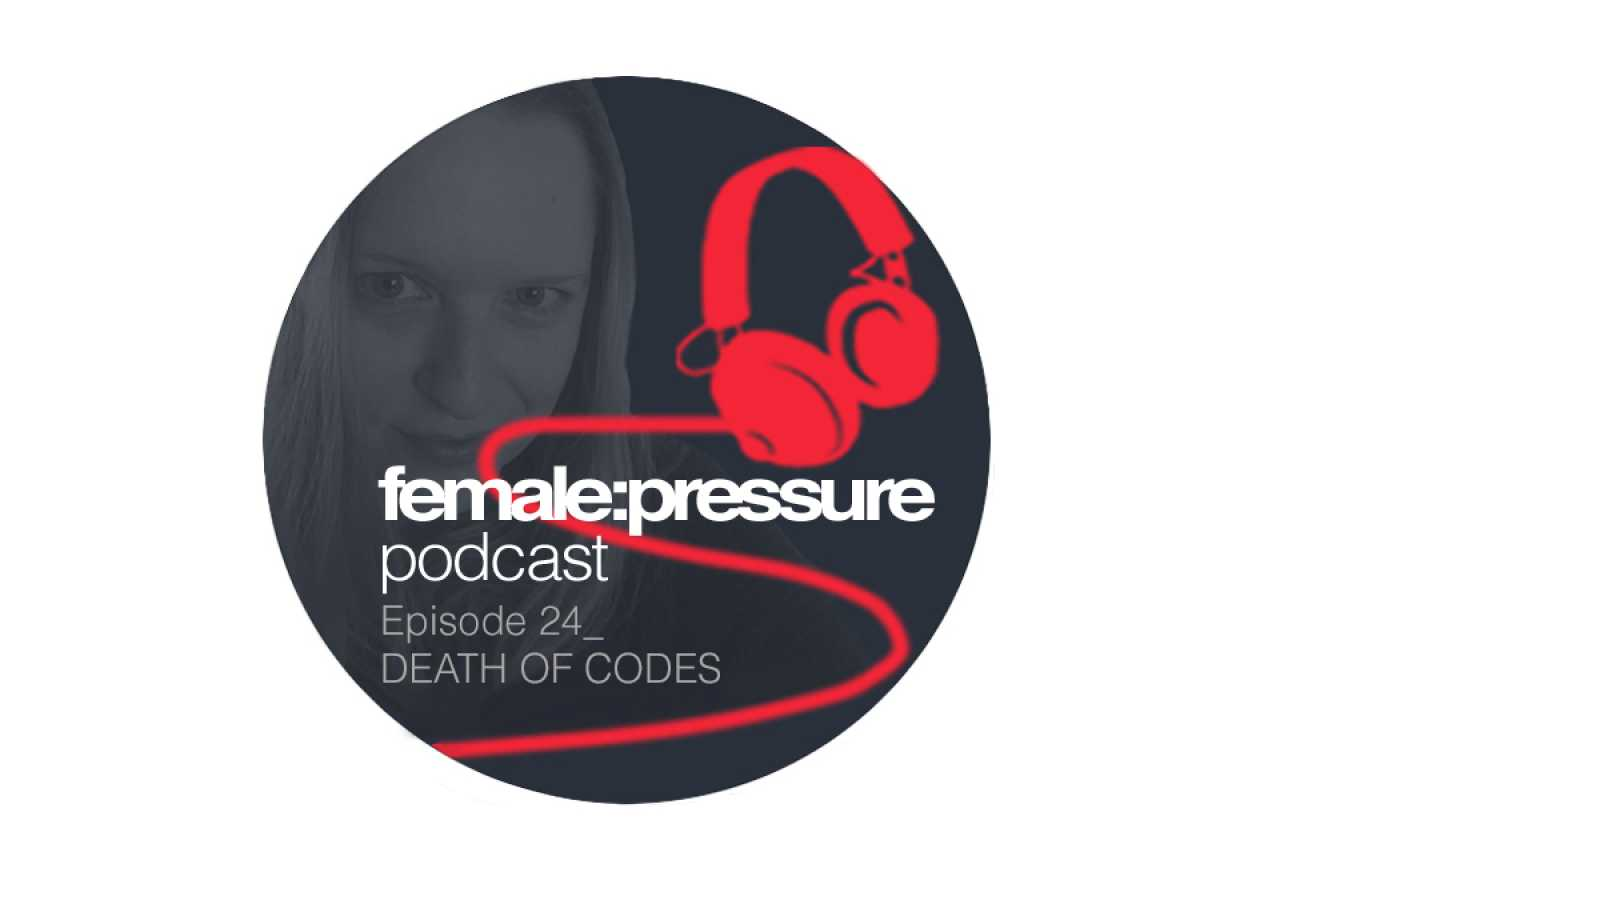 Resonancias - Female Pressure 24: Death Of Codes - 13/02/19 - escuchar ahora